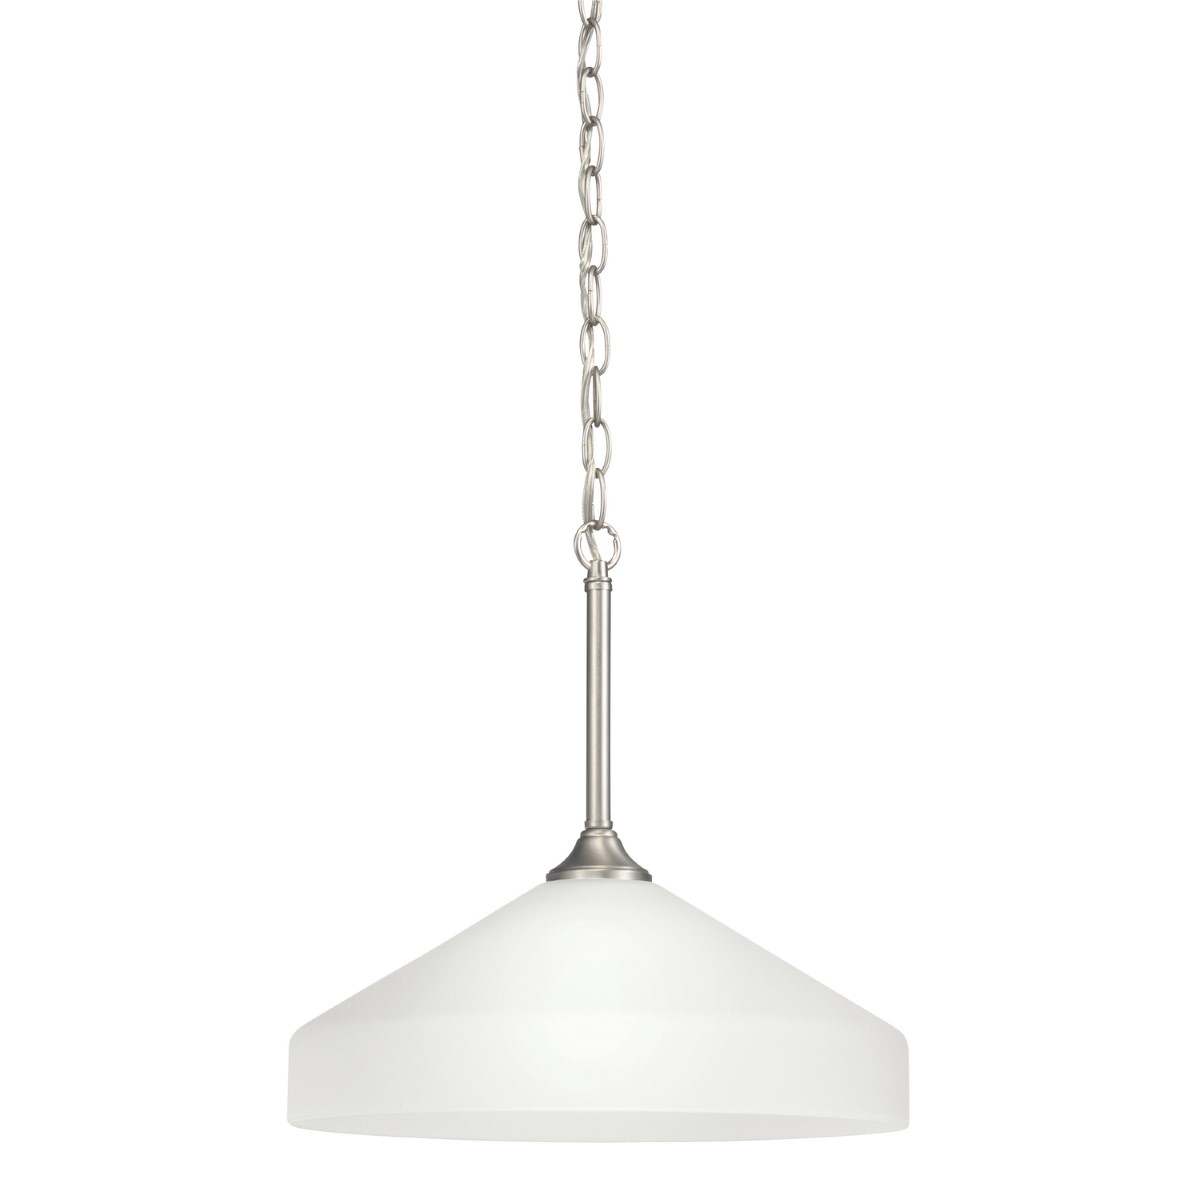 Kichler Ansonia Ansonia Pendant Light with Satin Etched Glass - Brushed Nickel (3349NI)